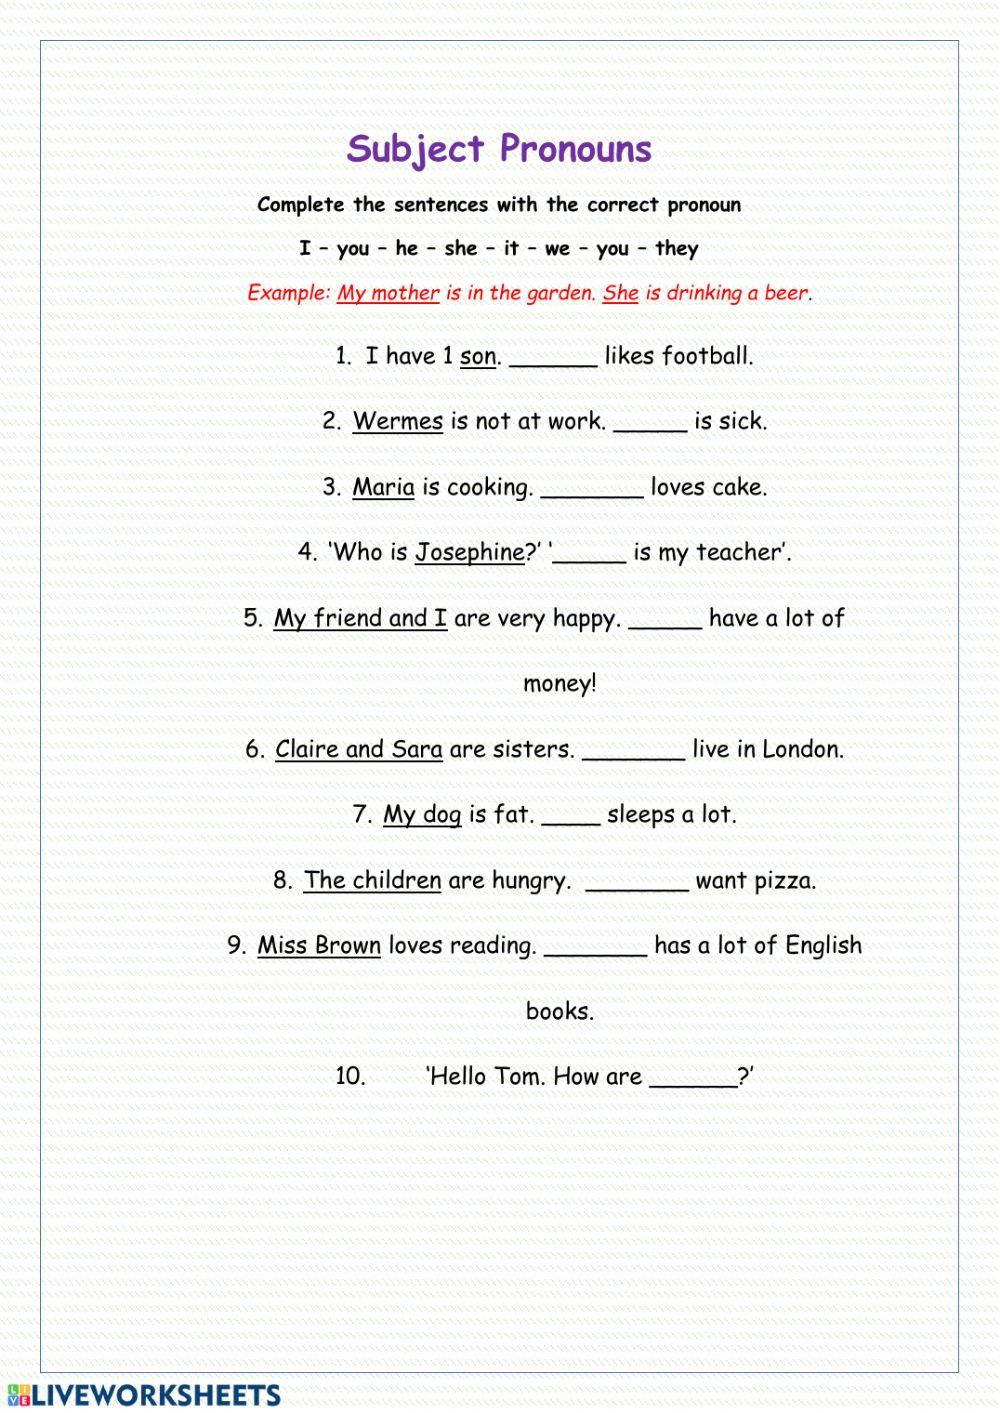 Pronoun Worksheets Second Grade Subject Pronouns Online Worksheet and Pdf